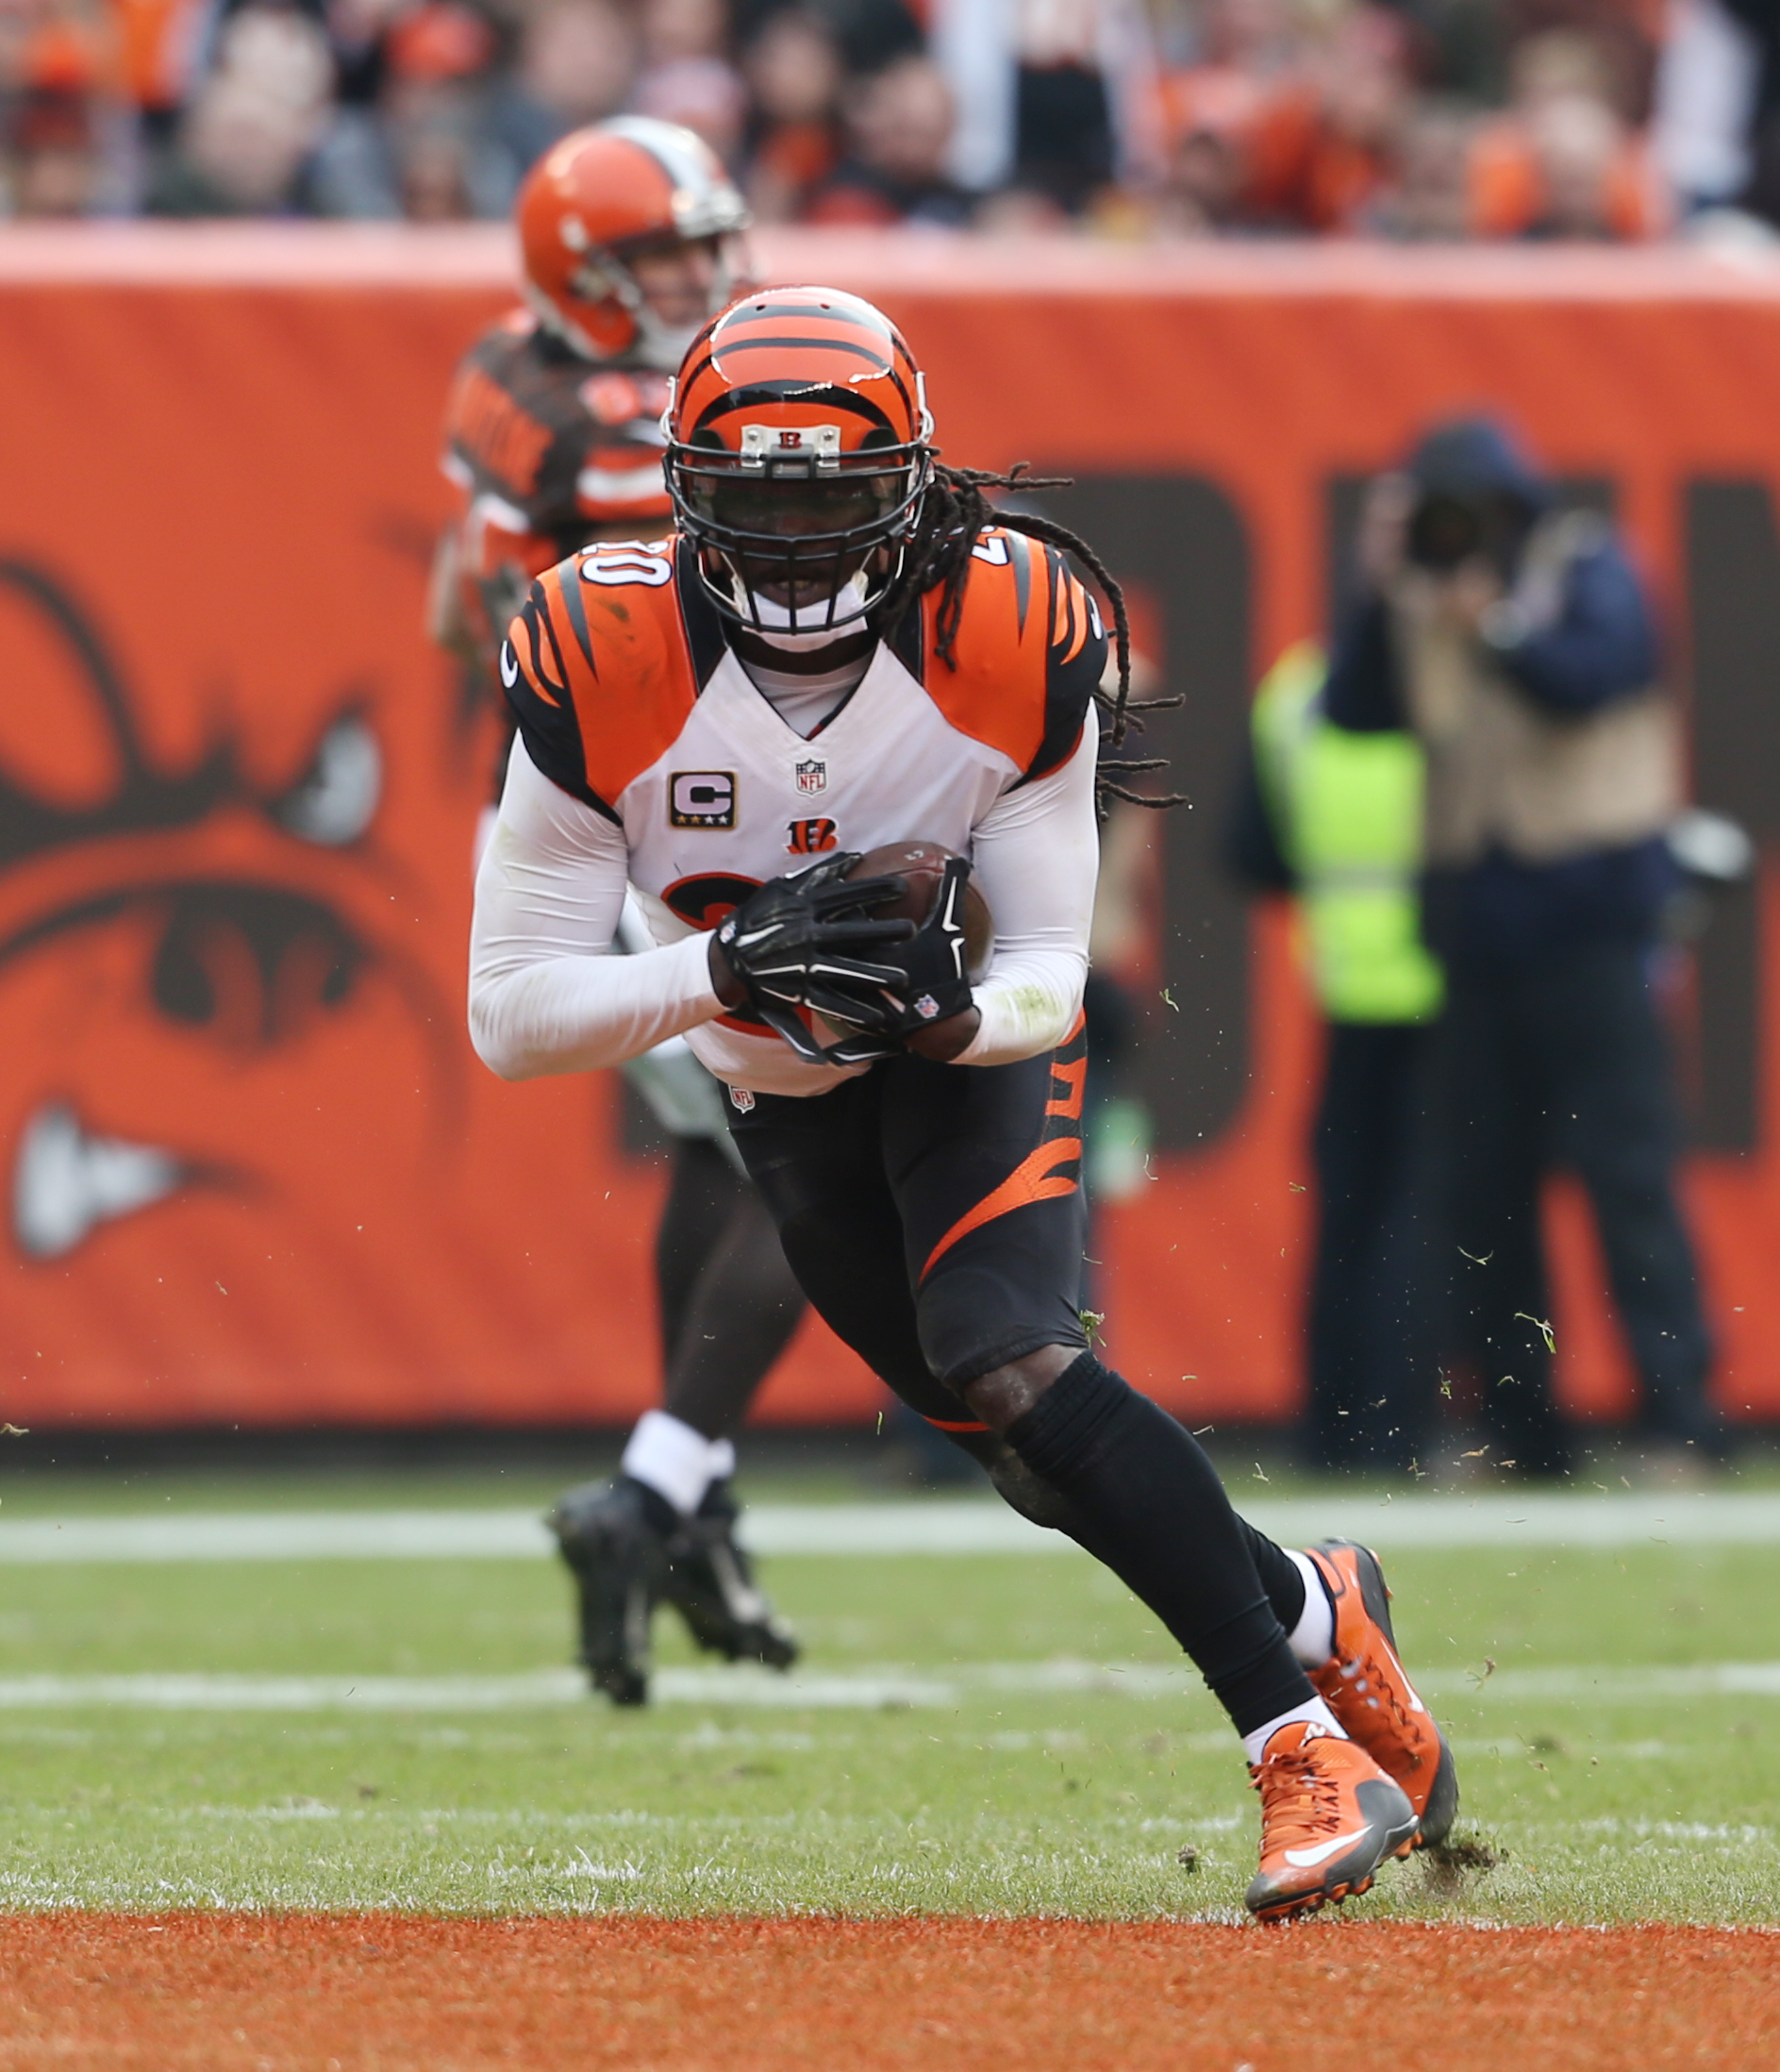 Cincinnati Bengals free safety Reggie Nelson (20) returns an interception against the Cleveland Browns in the first half of an NFL football game, Sunday, Dec. 6, 2015, in Cleveland. (AP Photo/Ron Schwane)